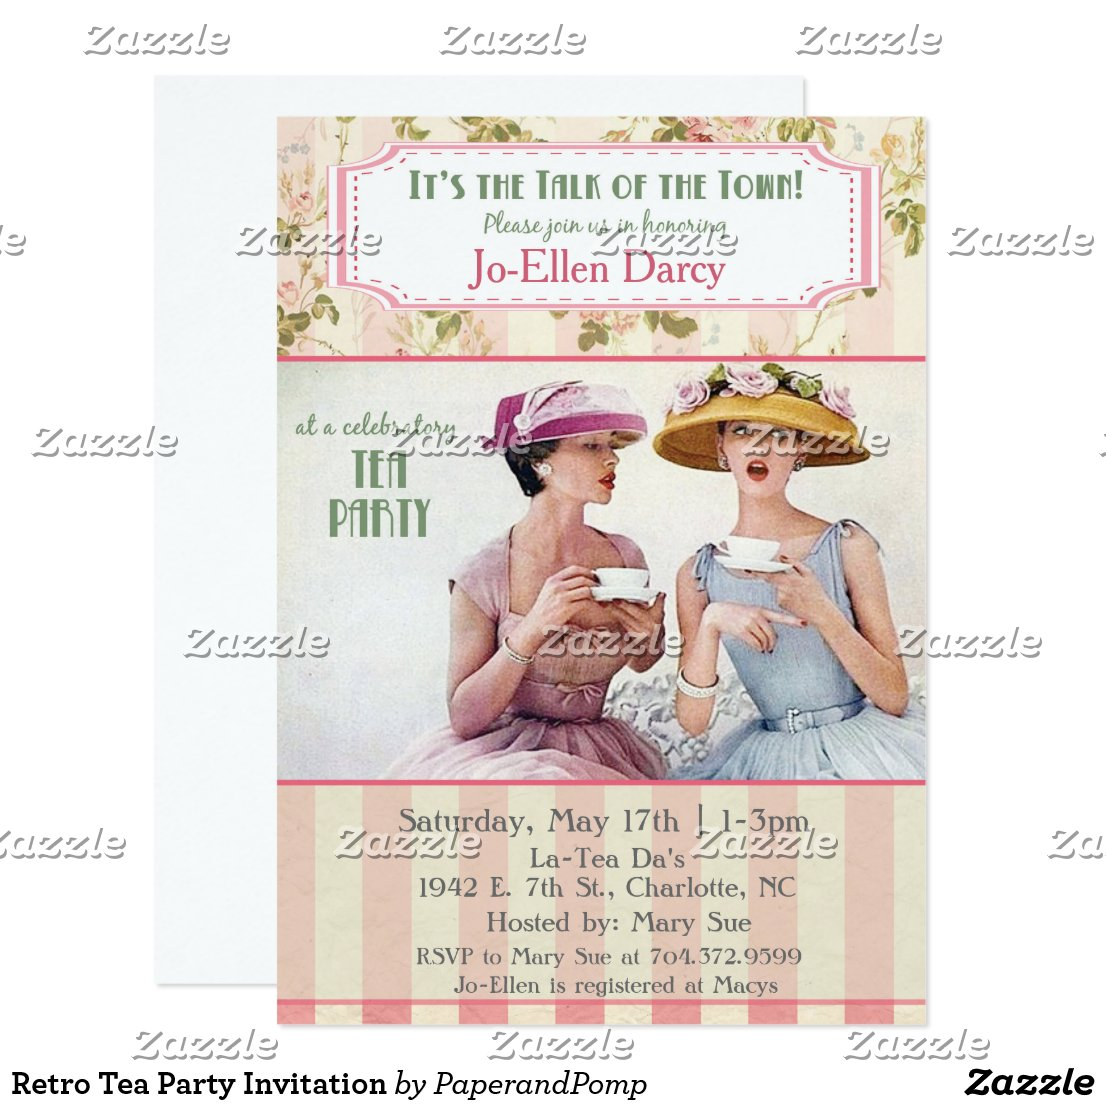 Retro Tea Party Invitation